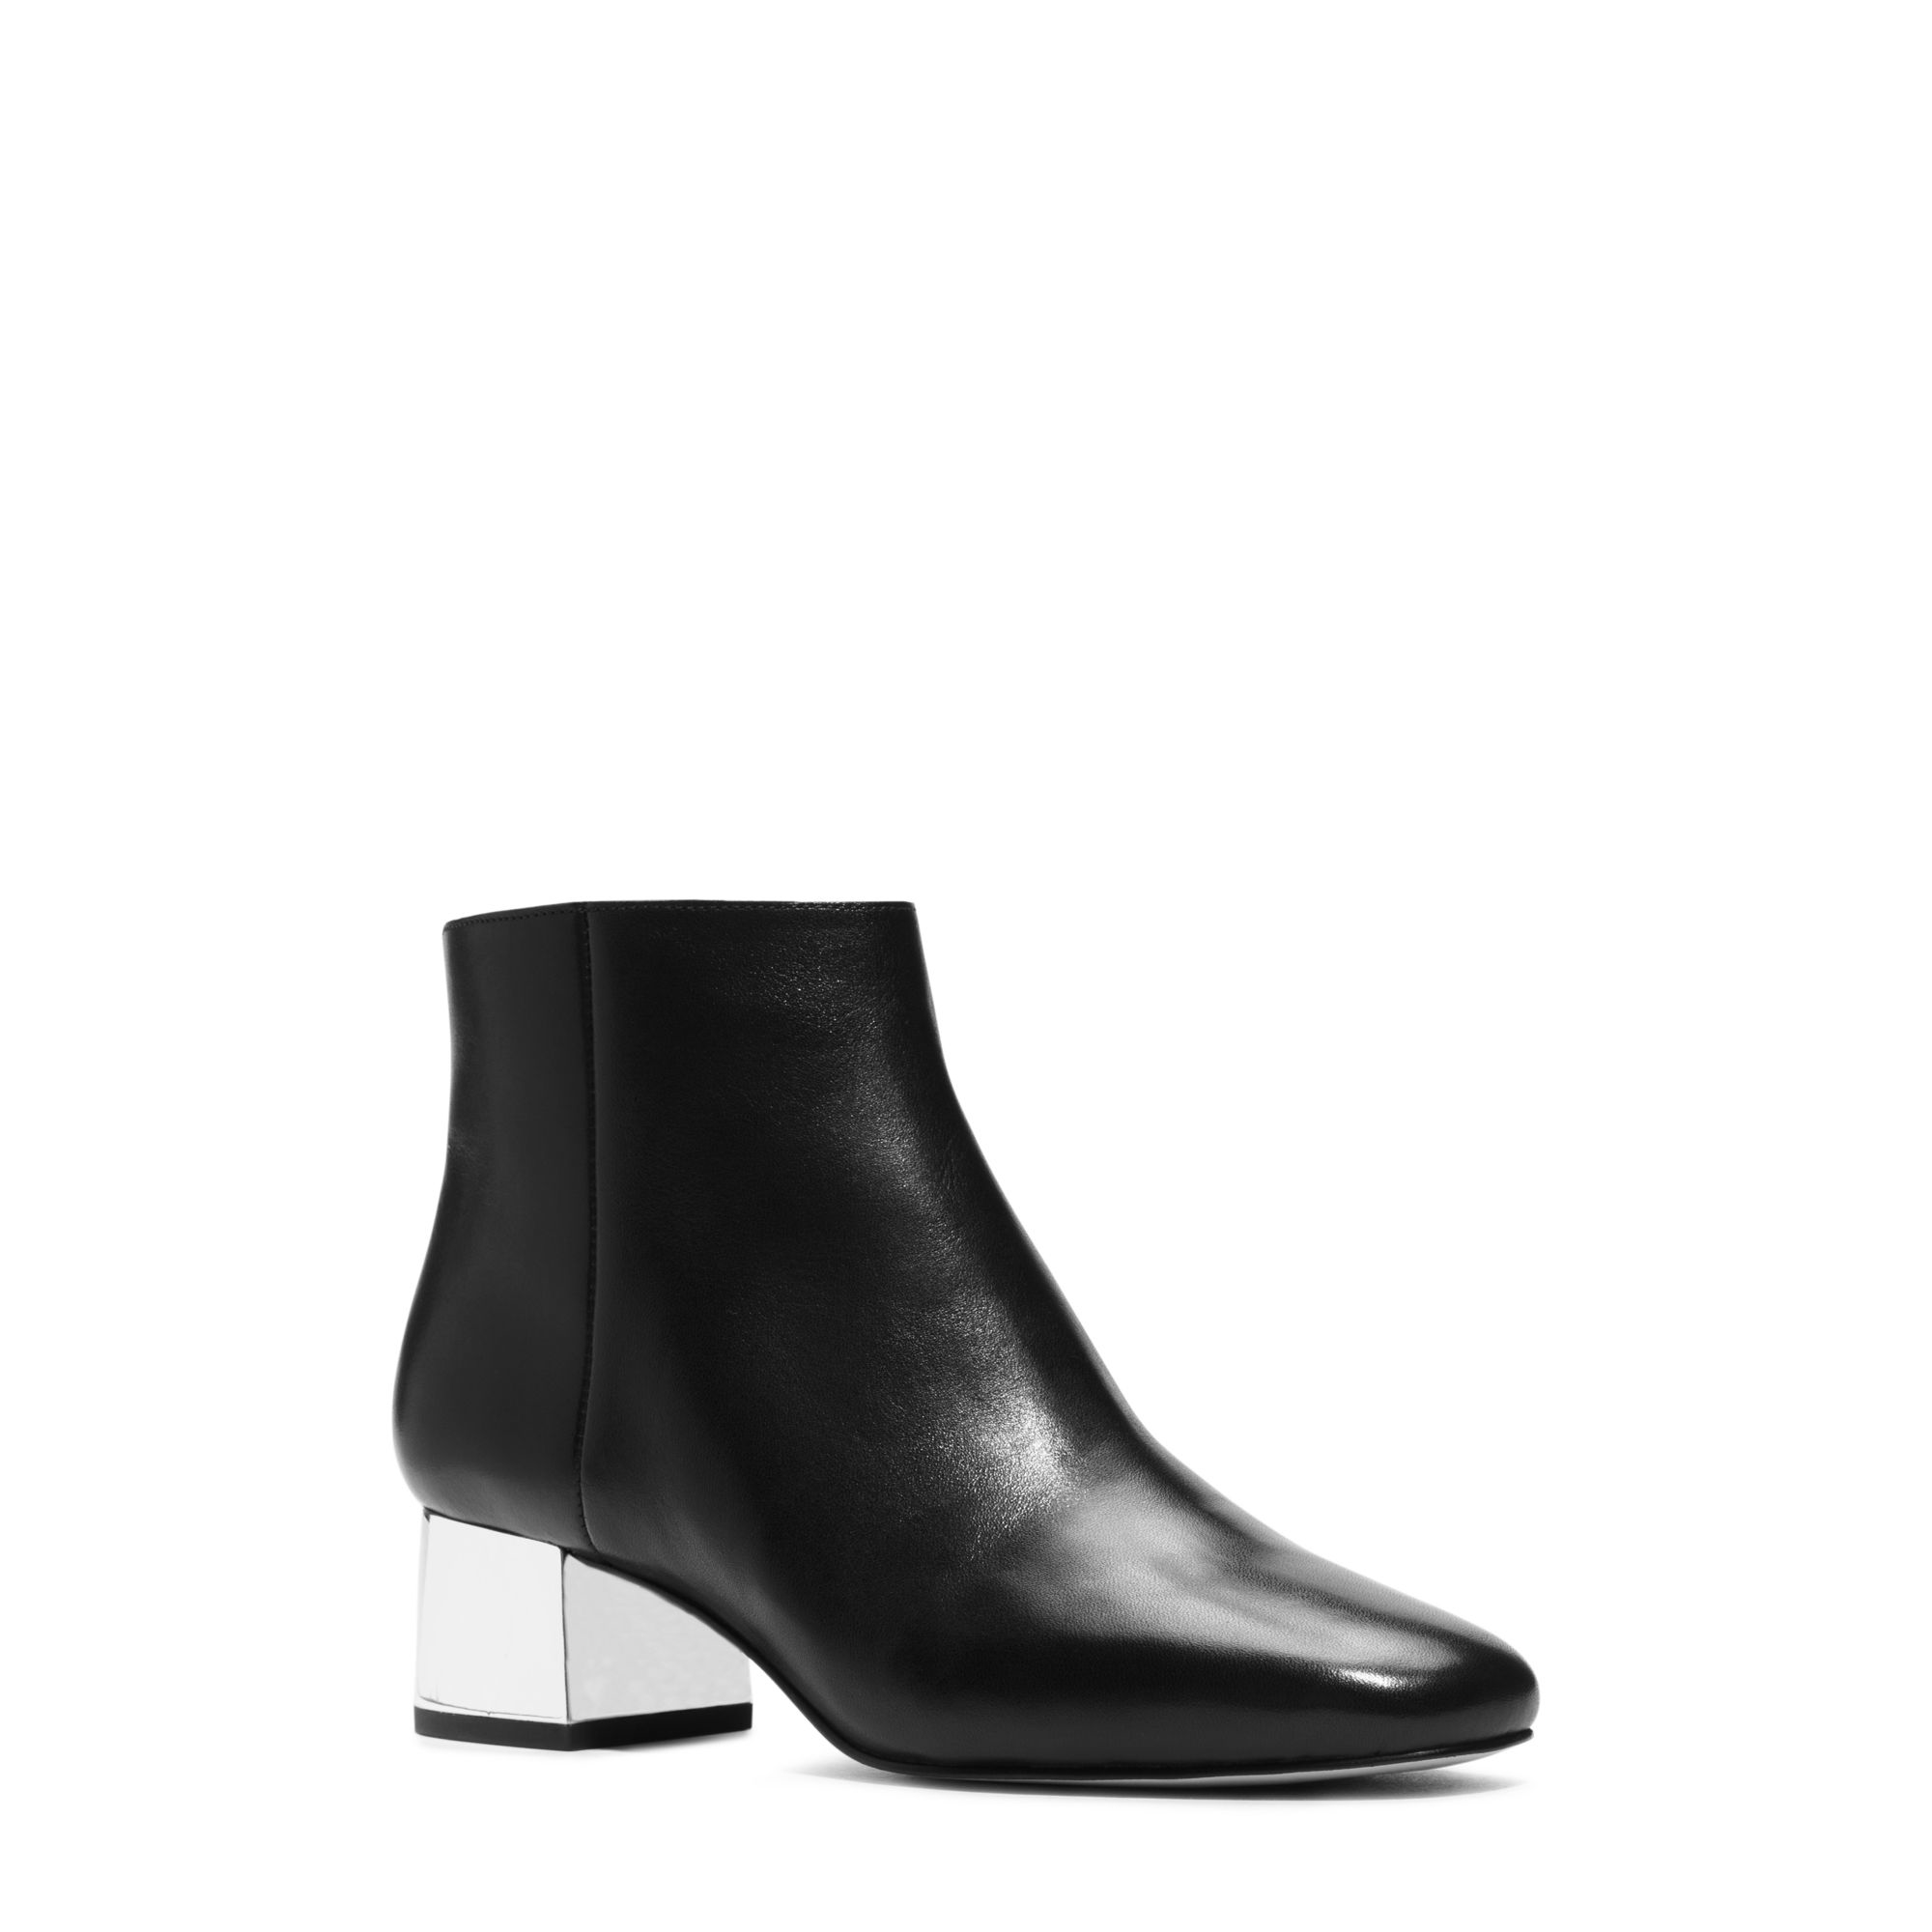 lyst michael kors lucy leather ankle boot in black. Black Bedroom Furniture Sets. Home Design Ideas